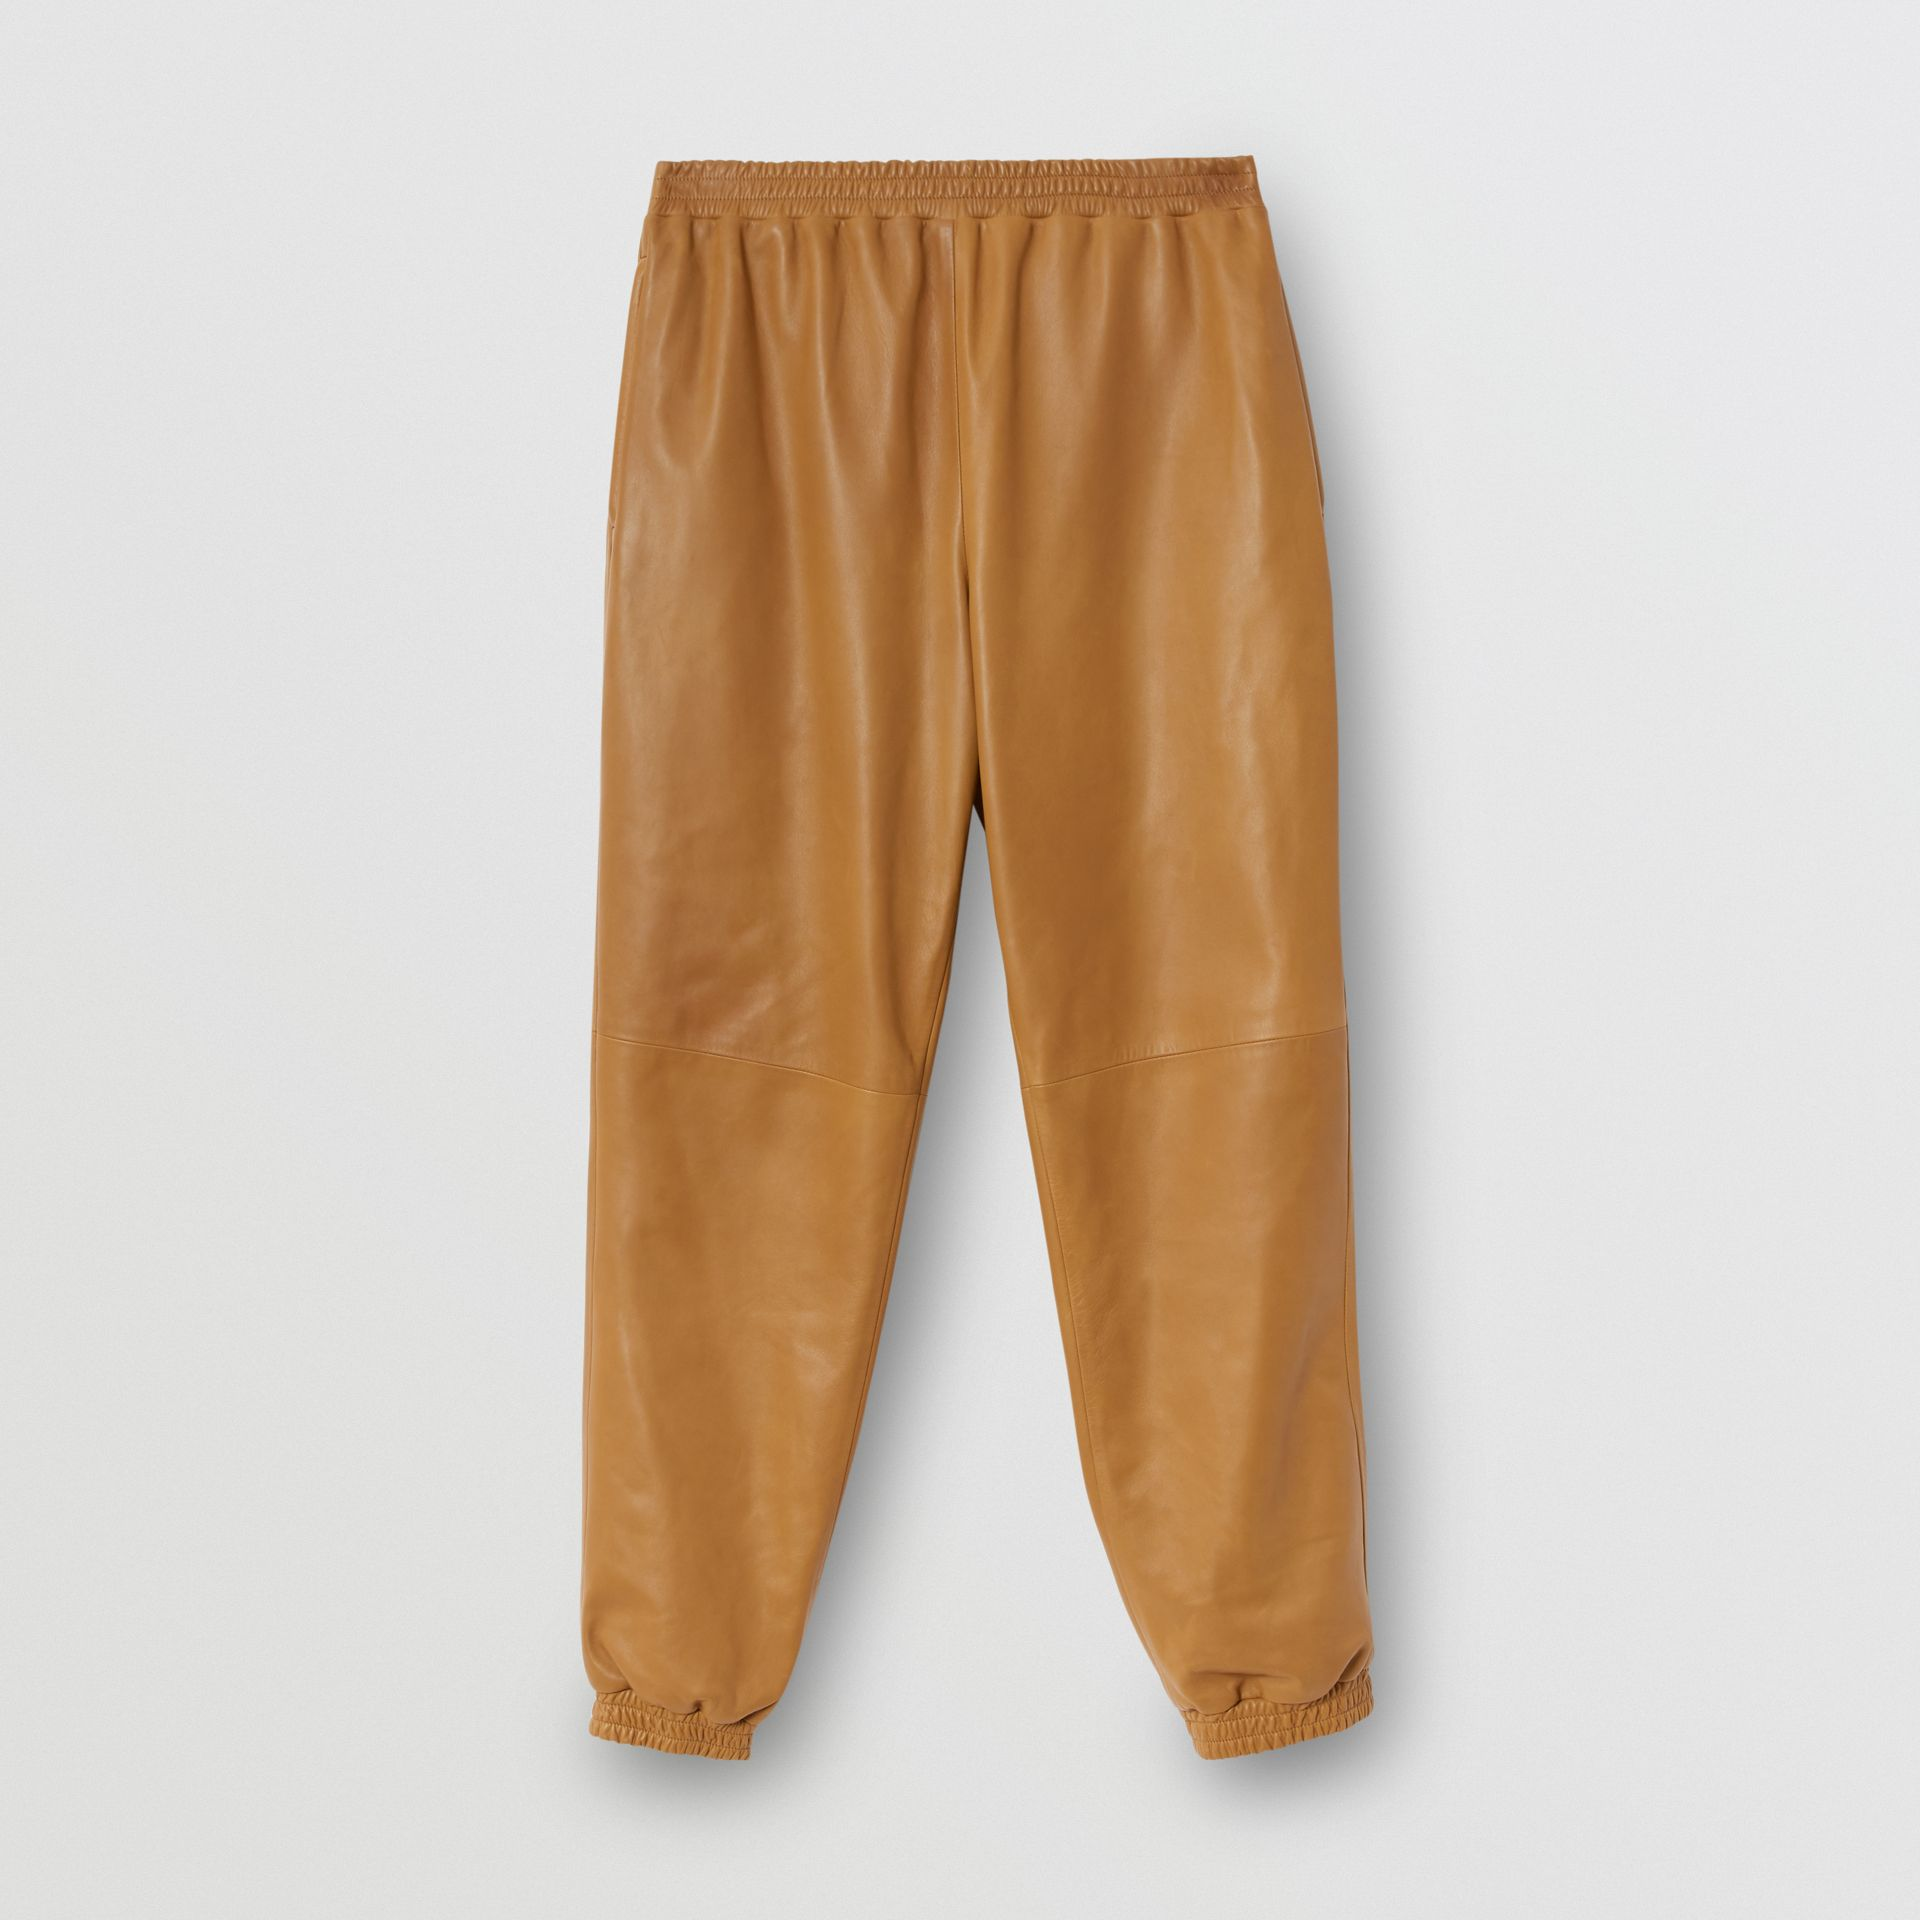 Plonge Lambskin Trackpants in Warm Walnut - Men | Burberry - gallery image 3